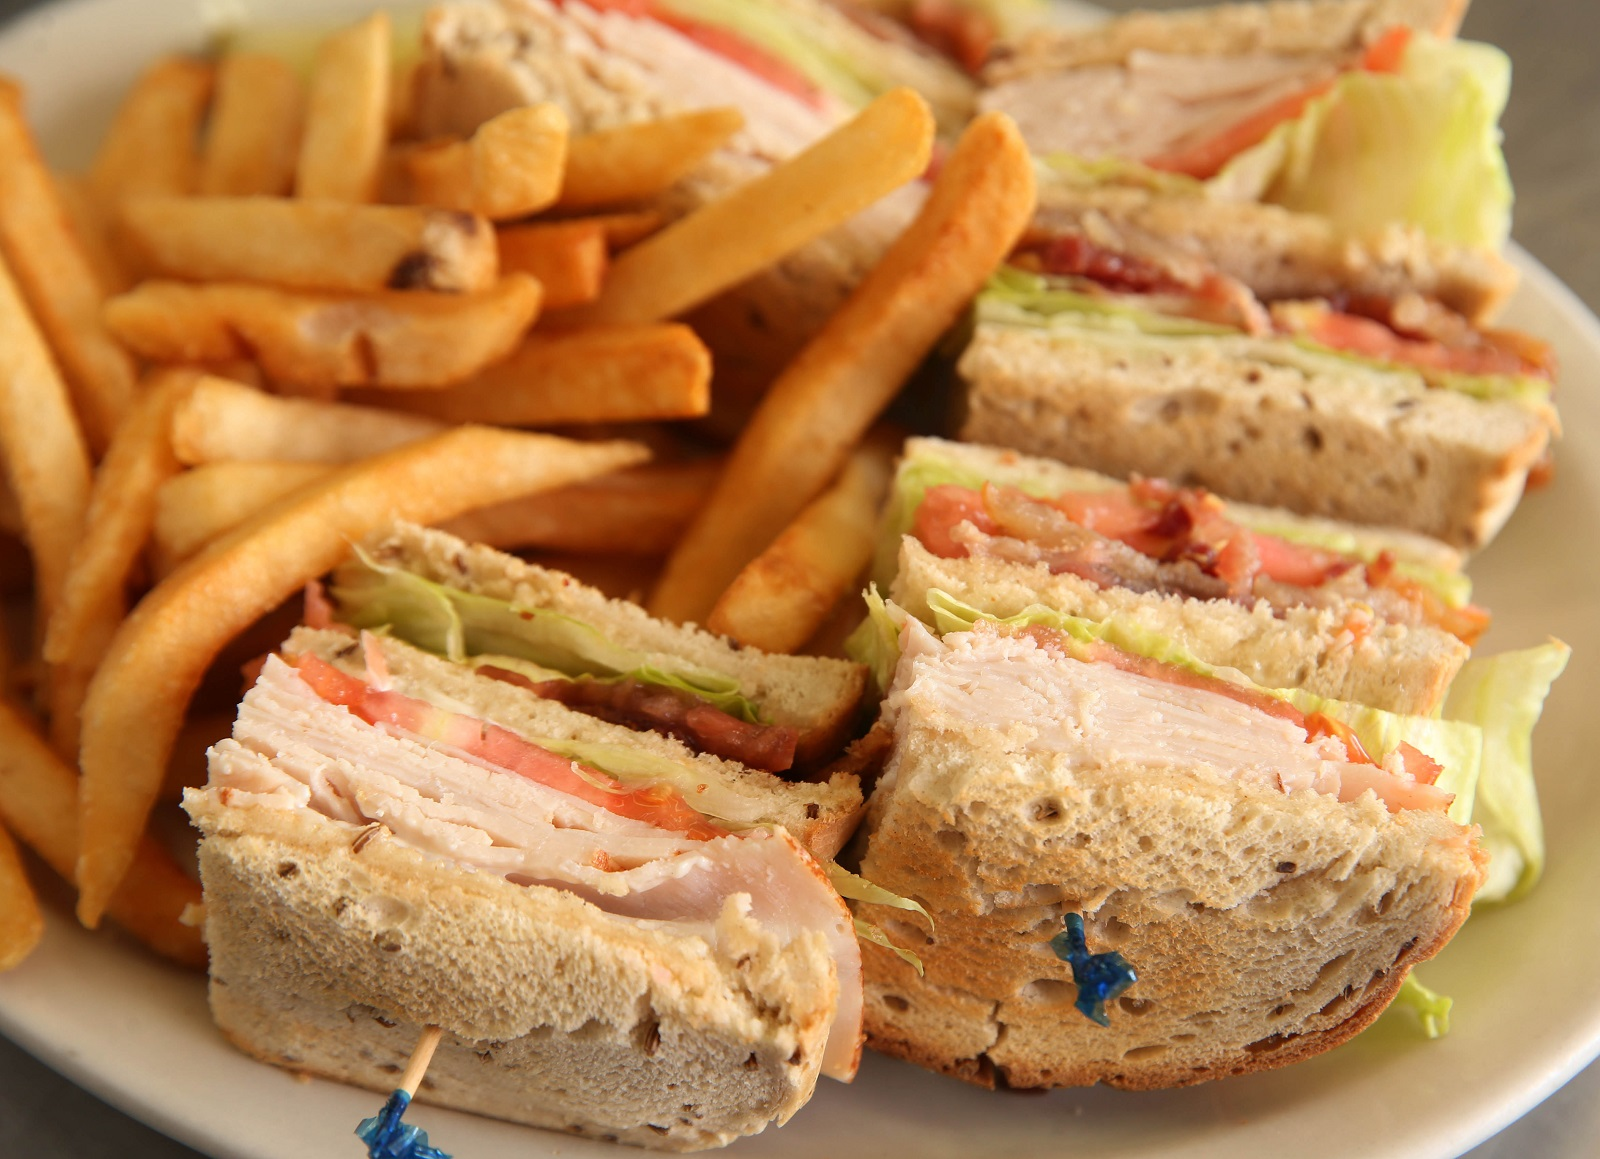 The Edge of Town's turkey club on rye with fries. (Sharon Cantillon/Buffalo News)